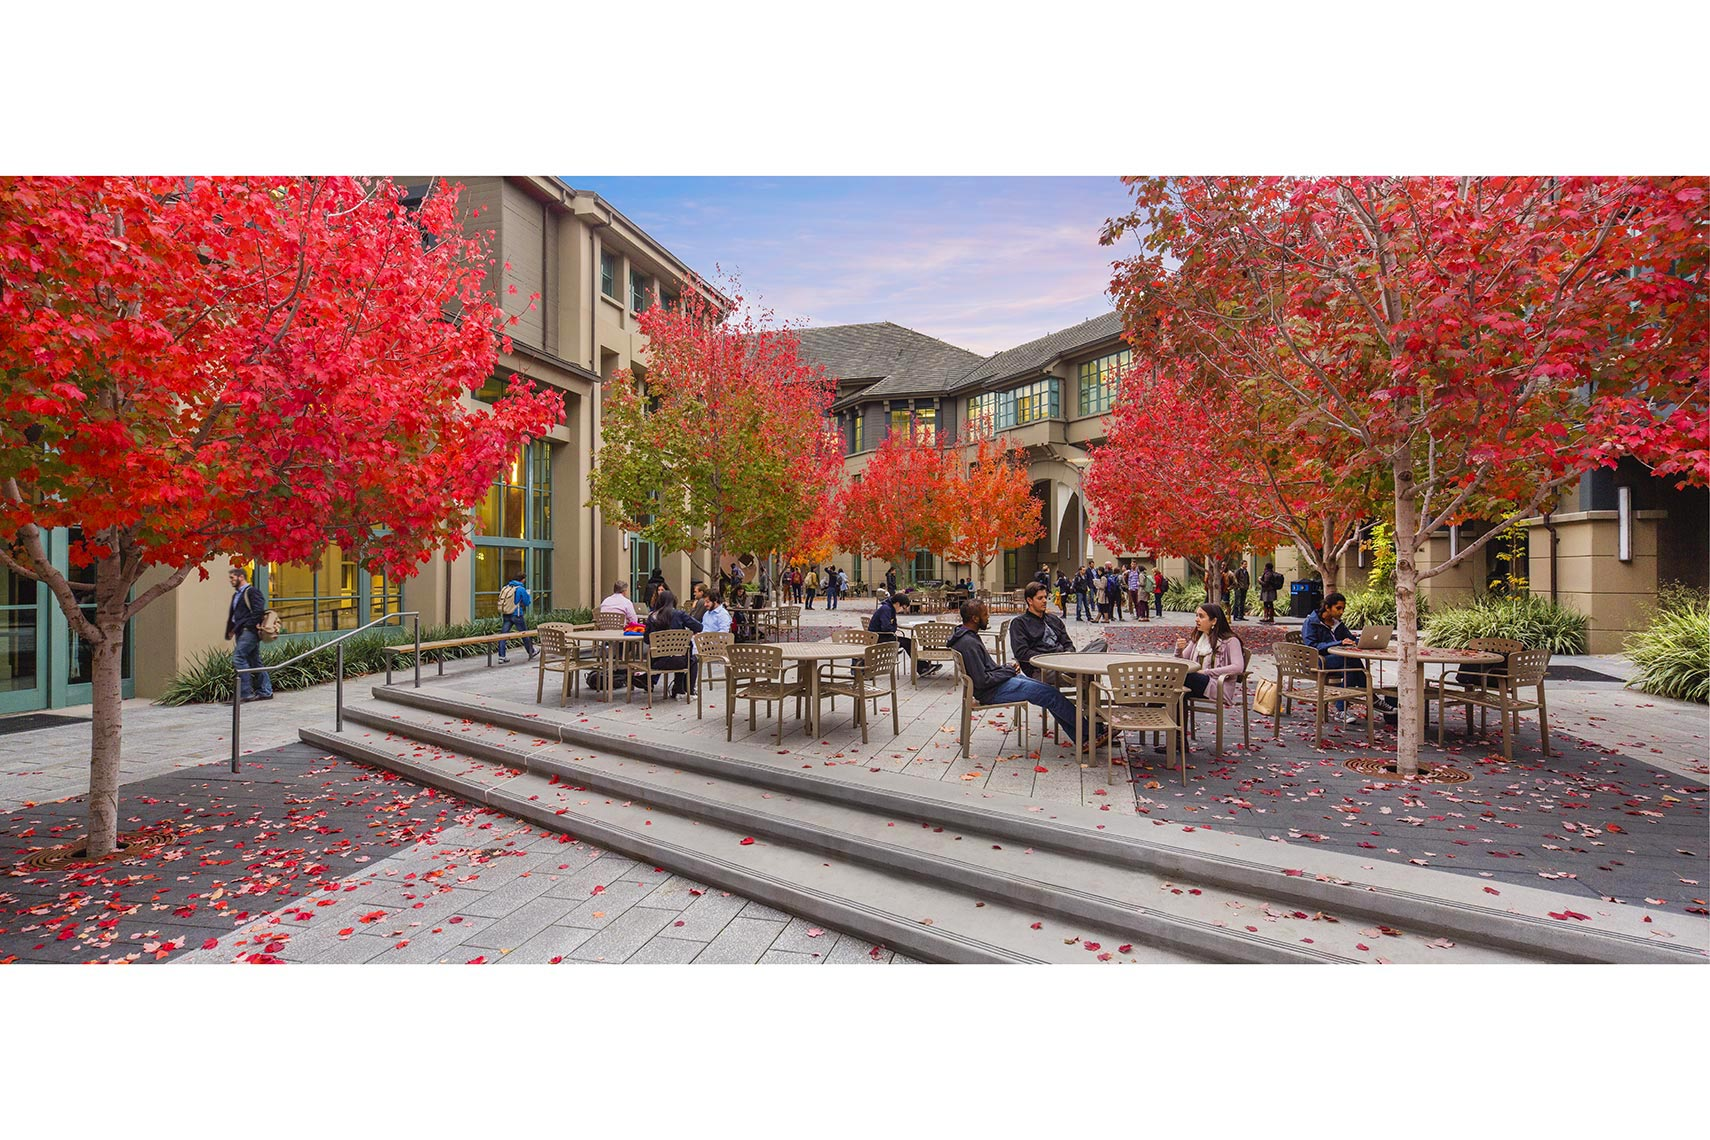 2015_Haas_Fall_Courtyard_0946_Web3